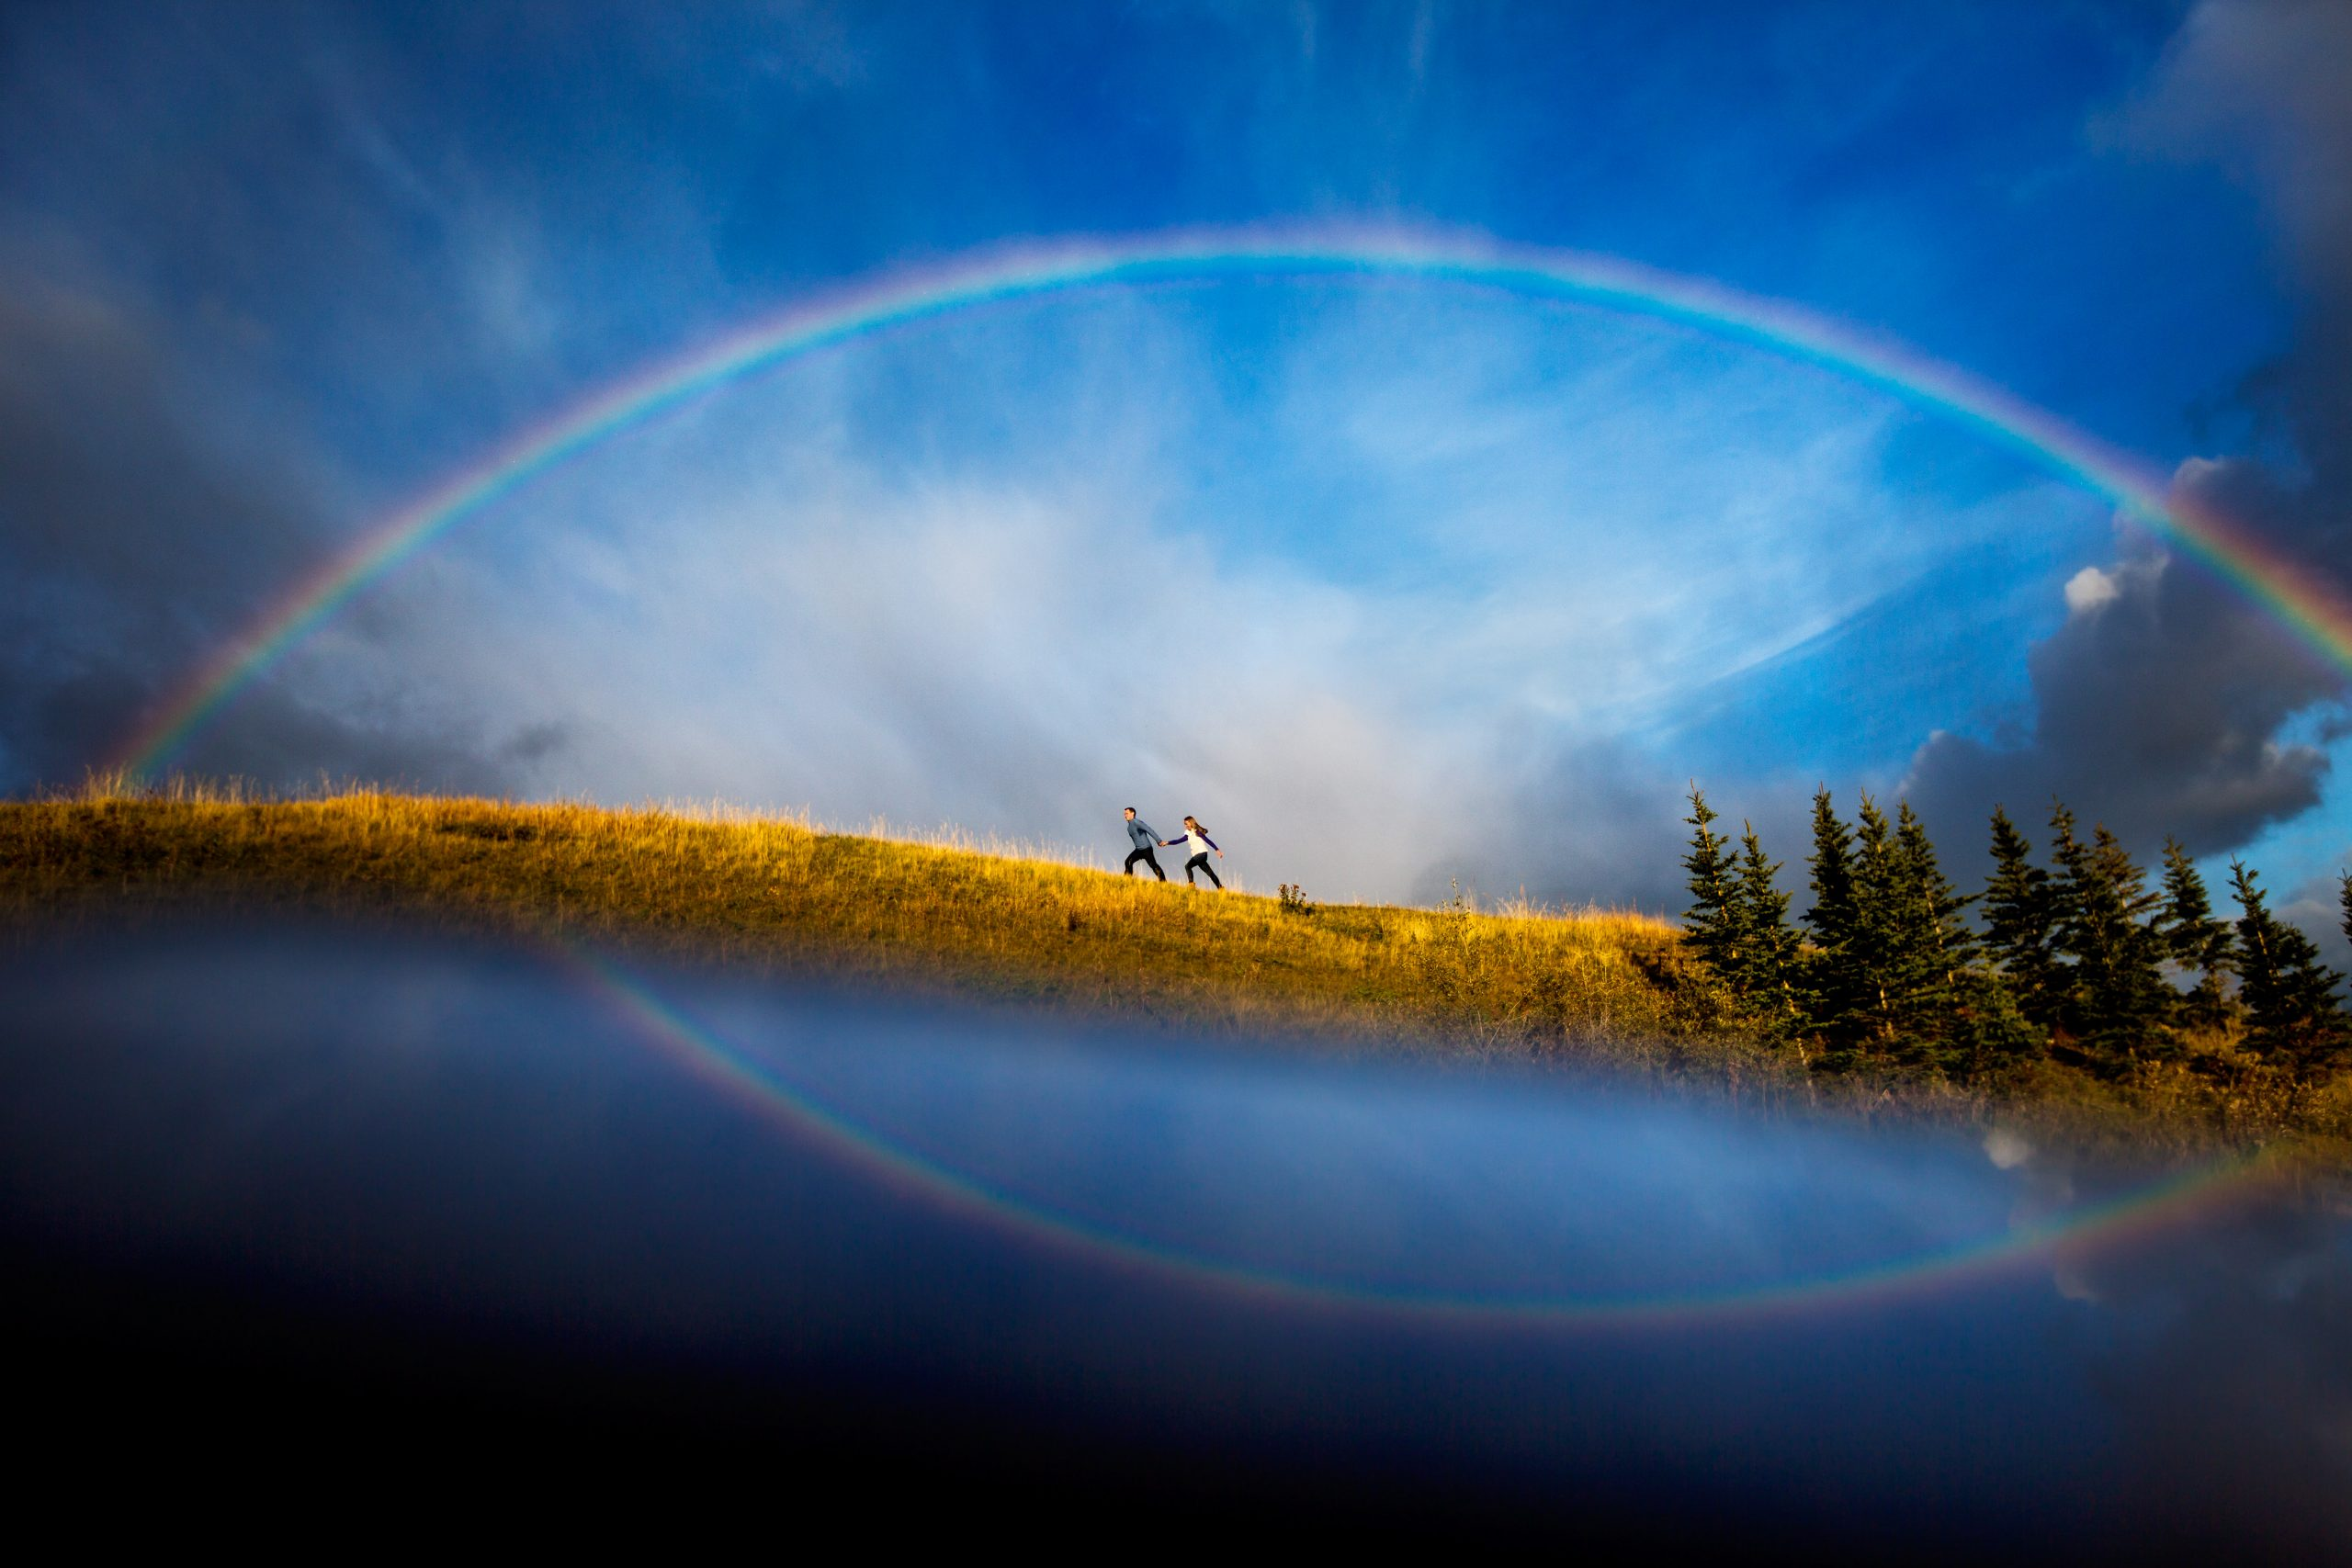 A couple holding hands run across a hill with a rainbow in the background